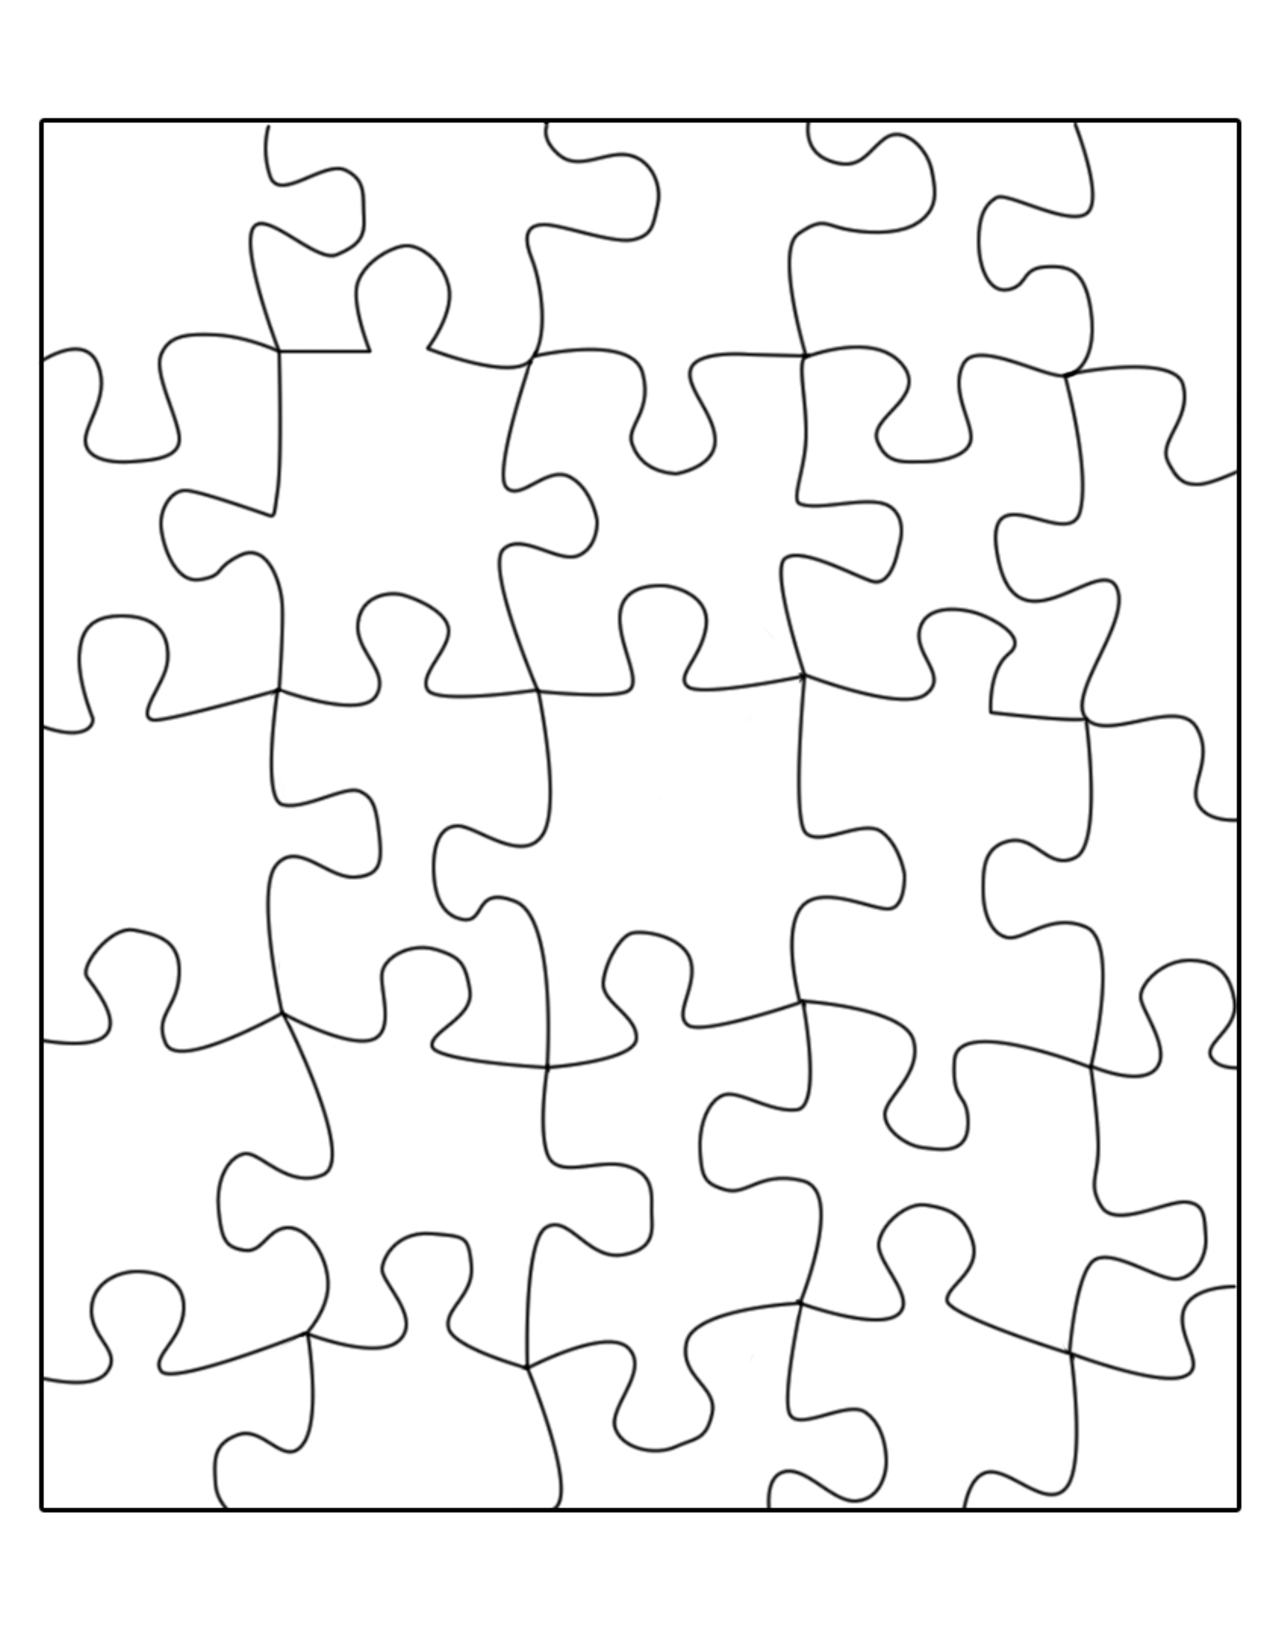 Free Puzzle Template, Download Free Clip Art, Free Clip Art On - Printable Puzzles Template